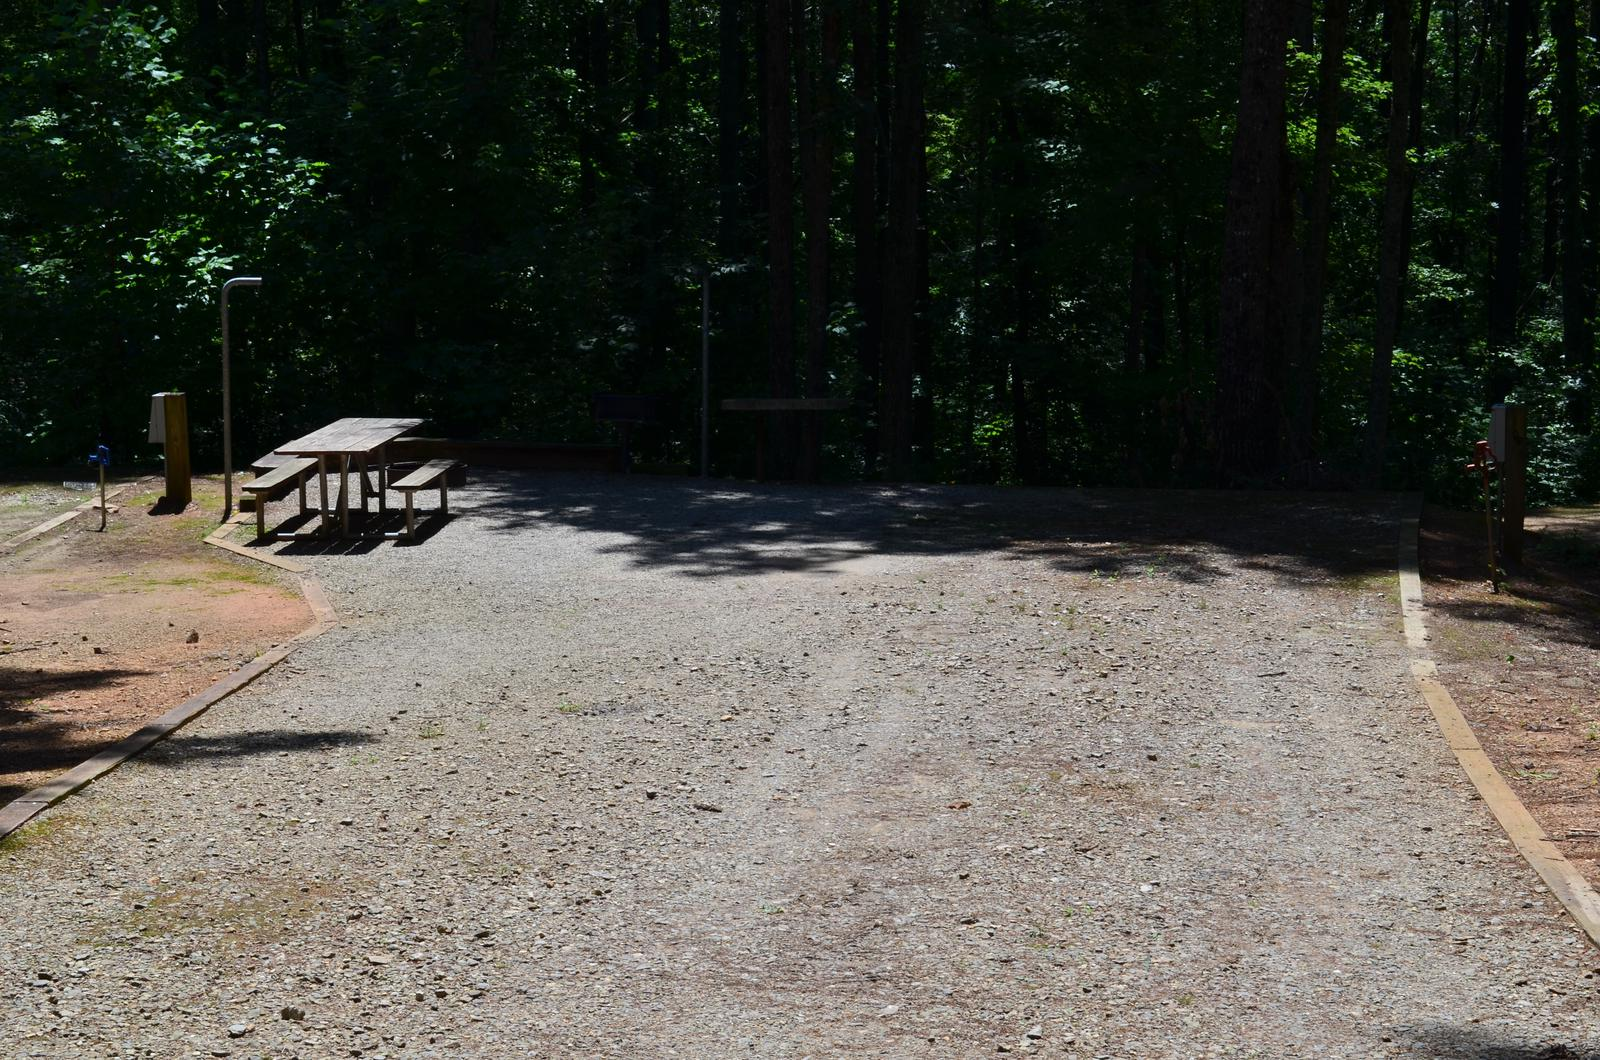 Flat gravel site surrounded by trees with fire pit, grill, table